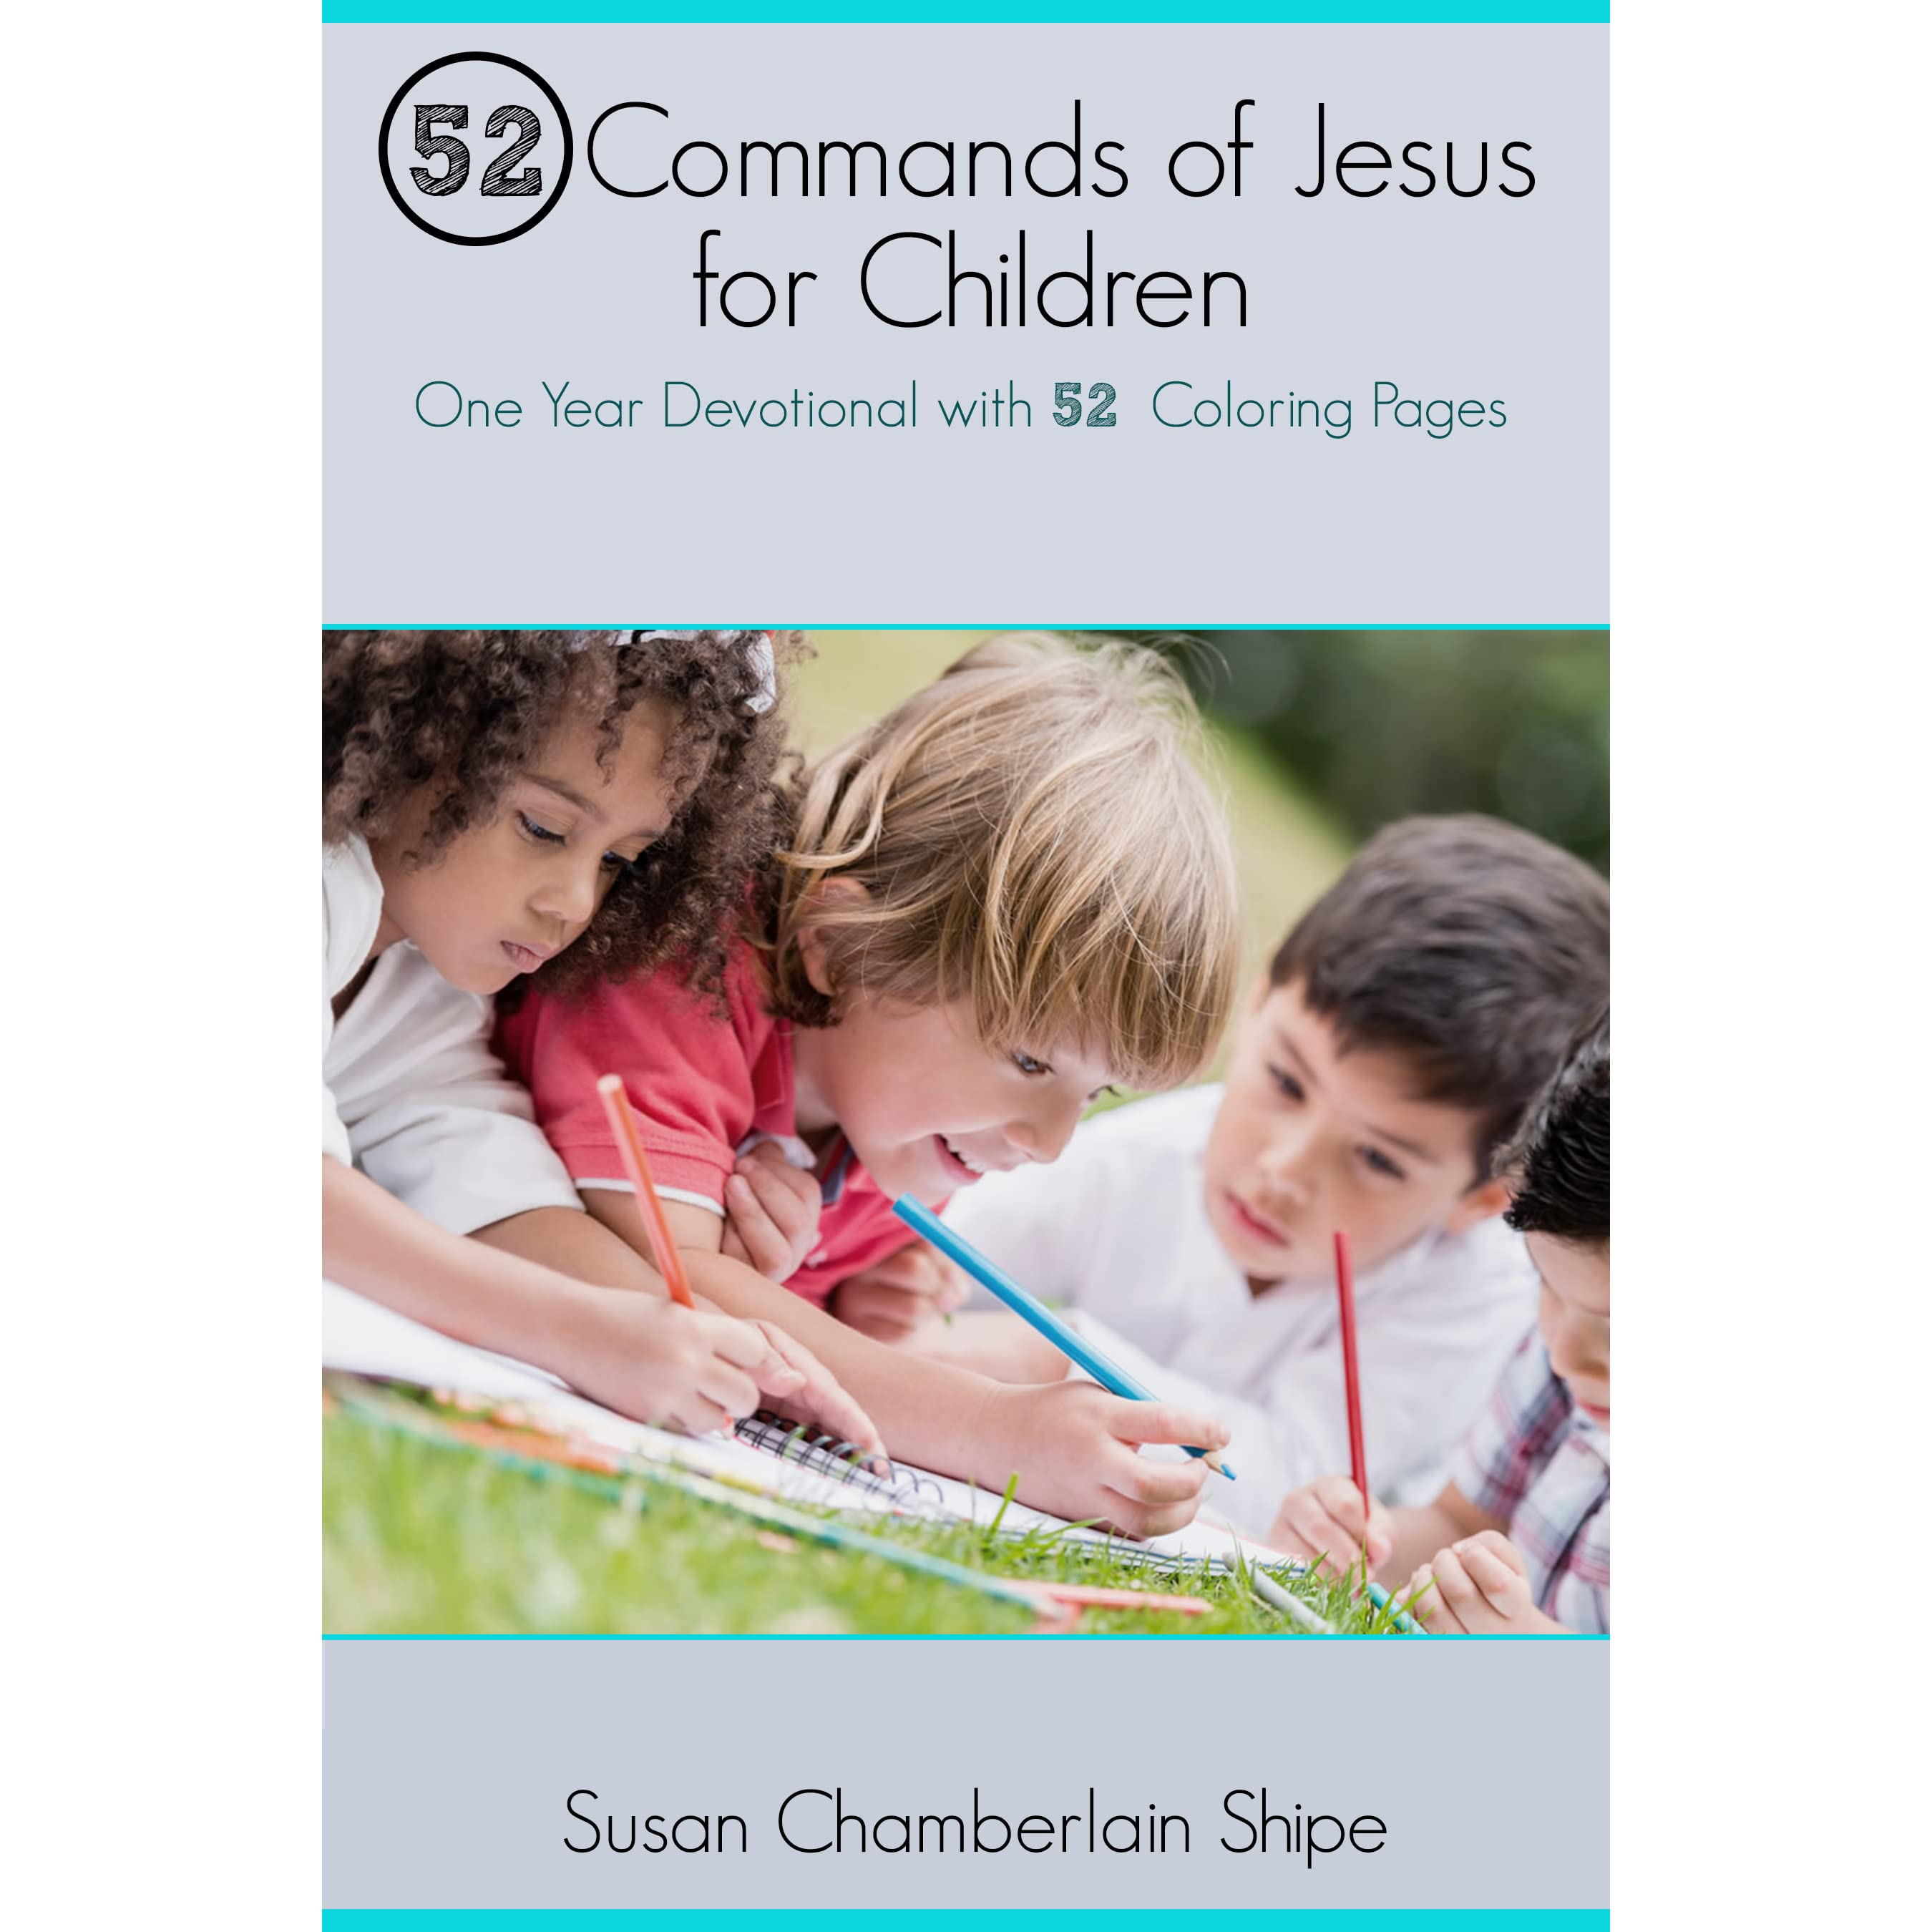 52 commands of jesus for children one year devotional with 52